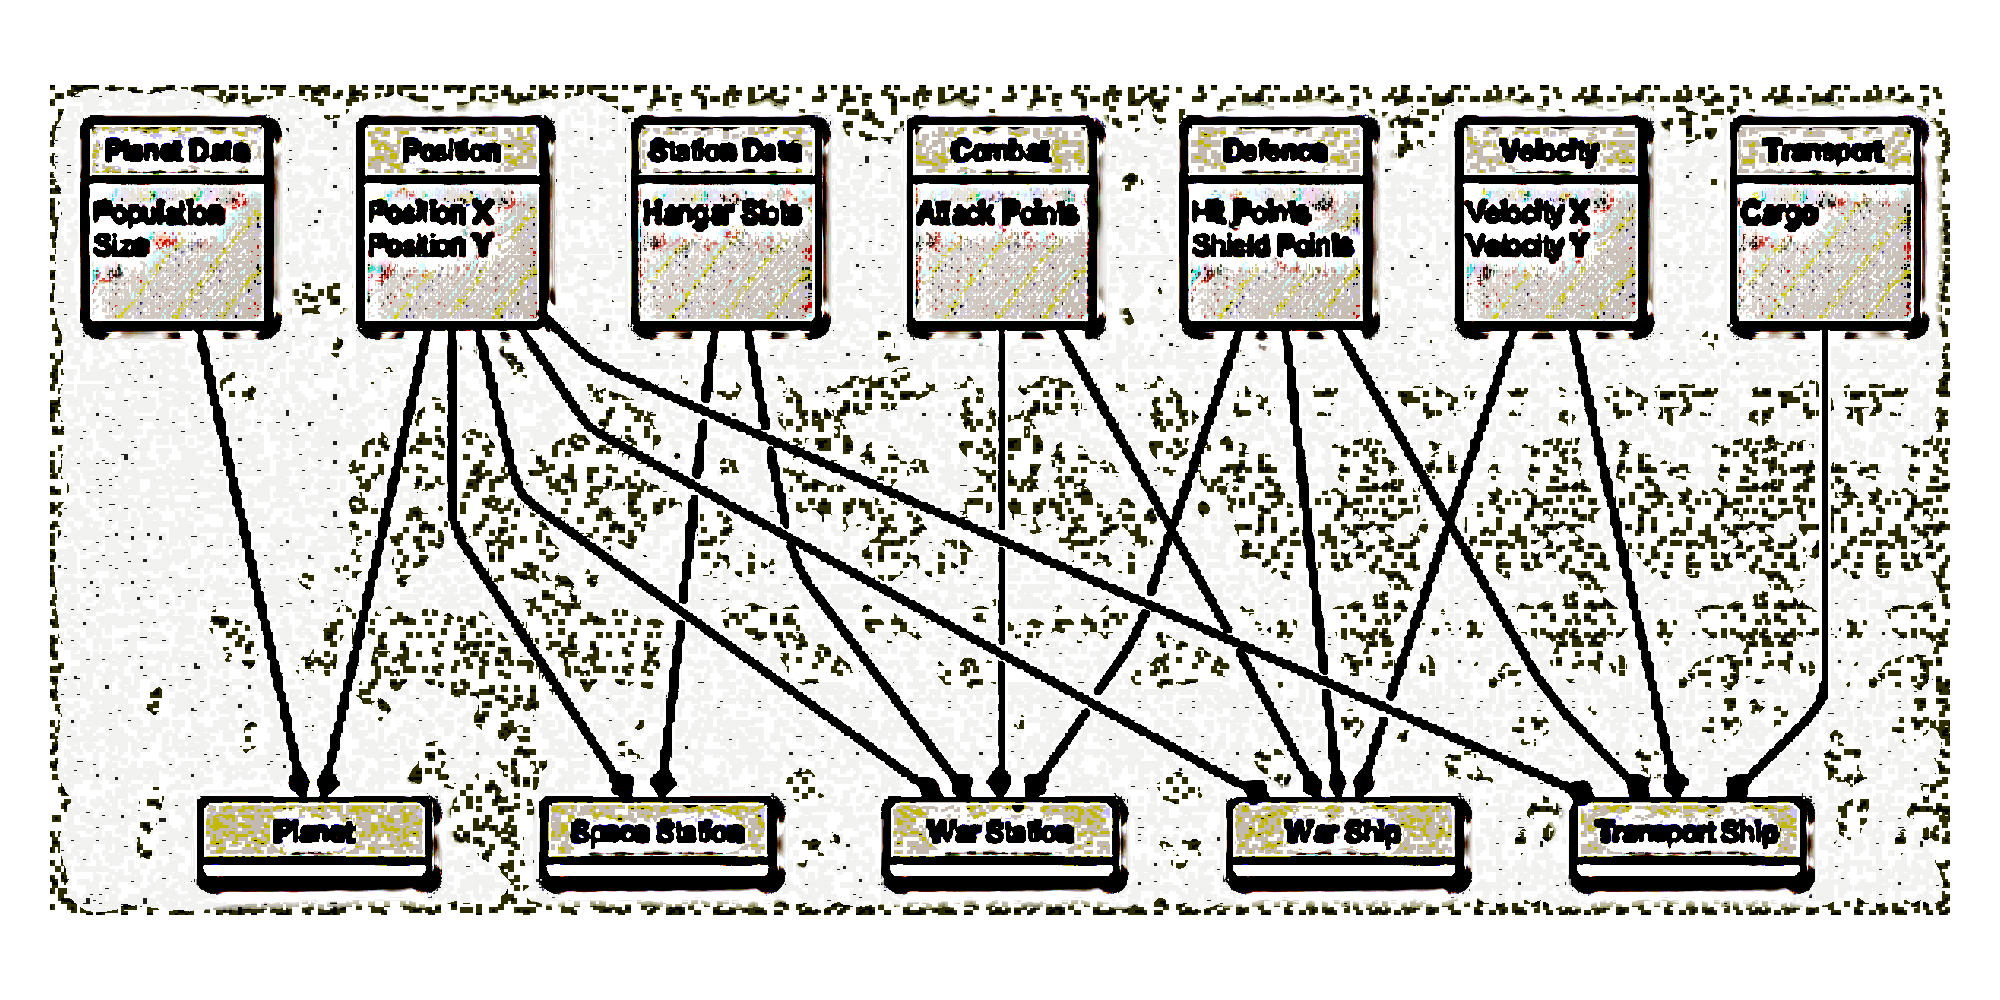 Entity Based System diagram found on the ancient scrolls